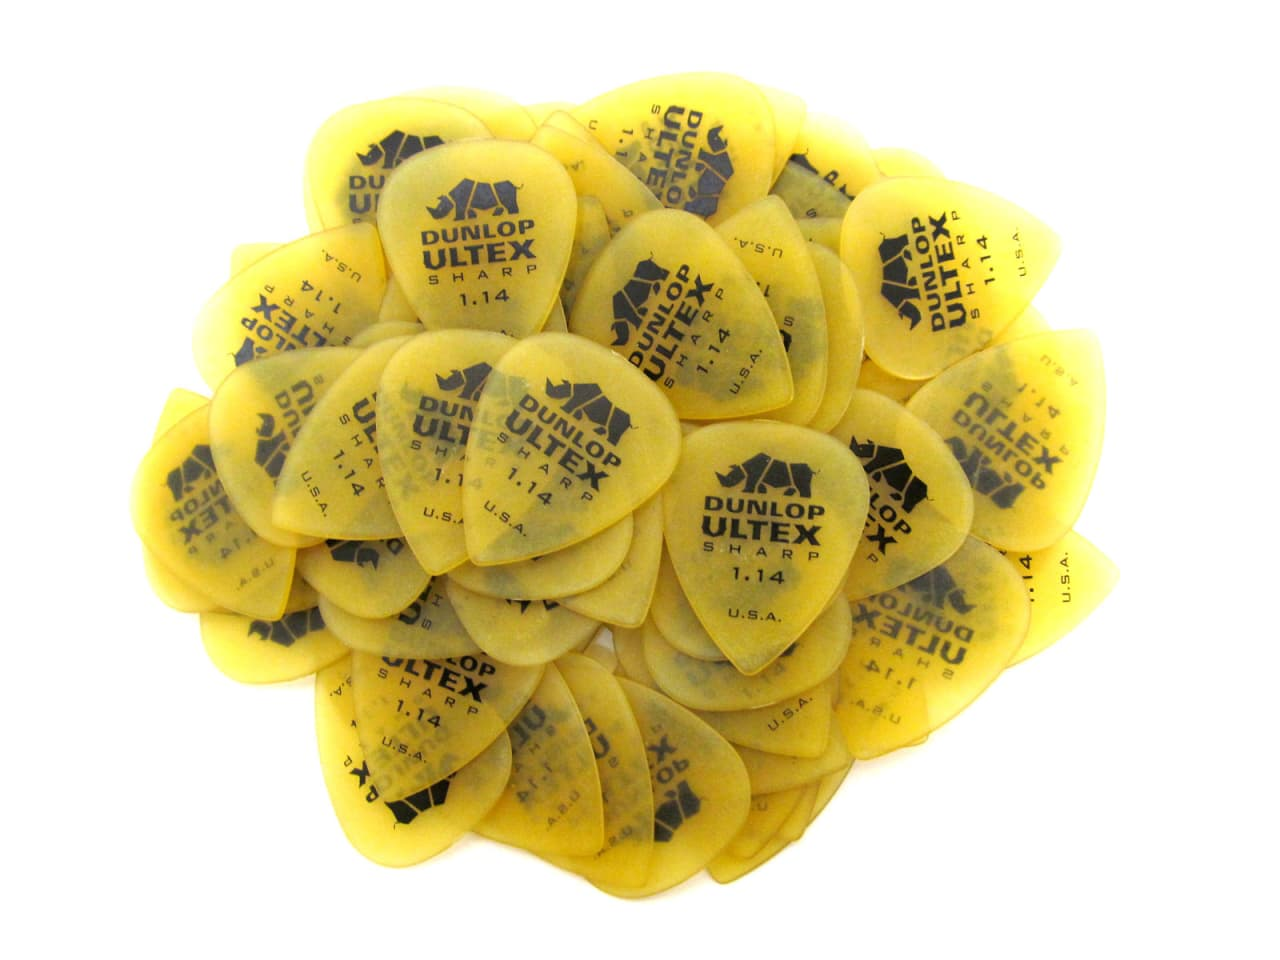 Dunlop Ultex Sharp Guitar Pick Plectrum Mediator 0.73mm-2.0mm, 1/piece